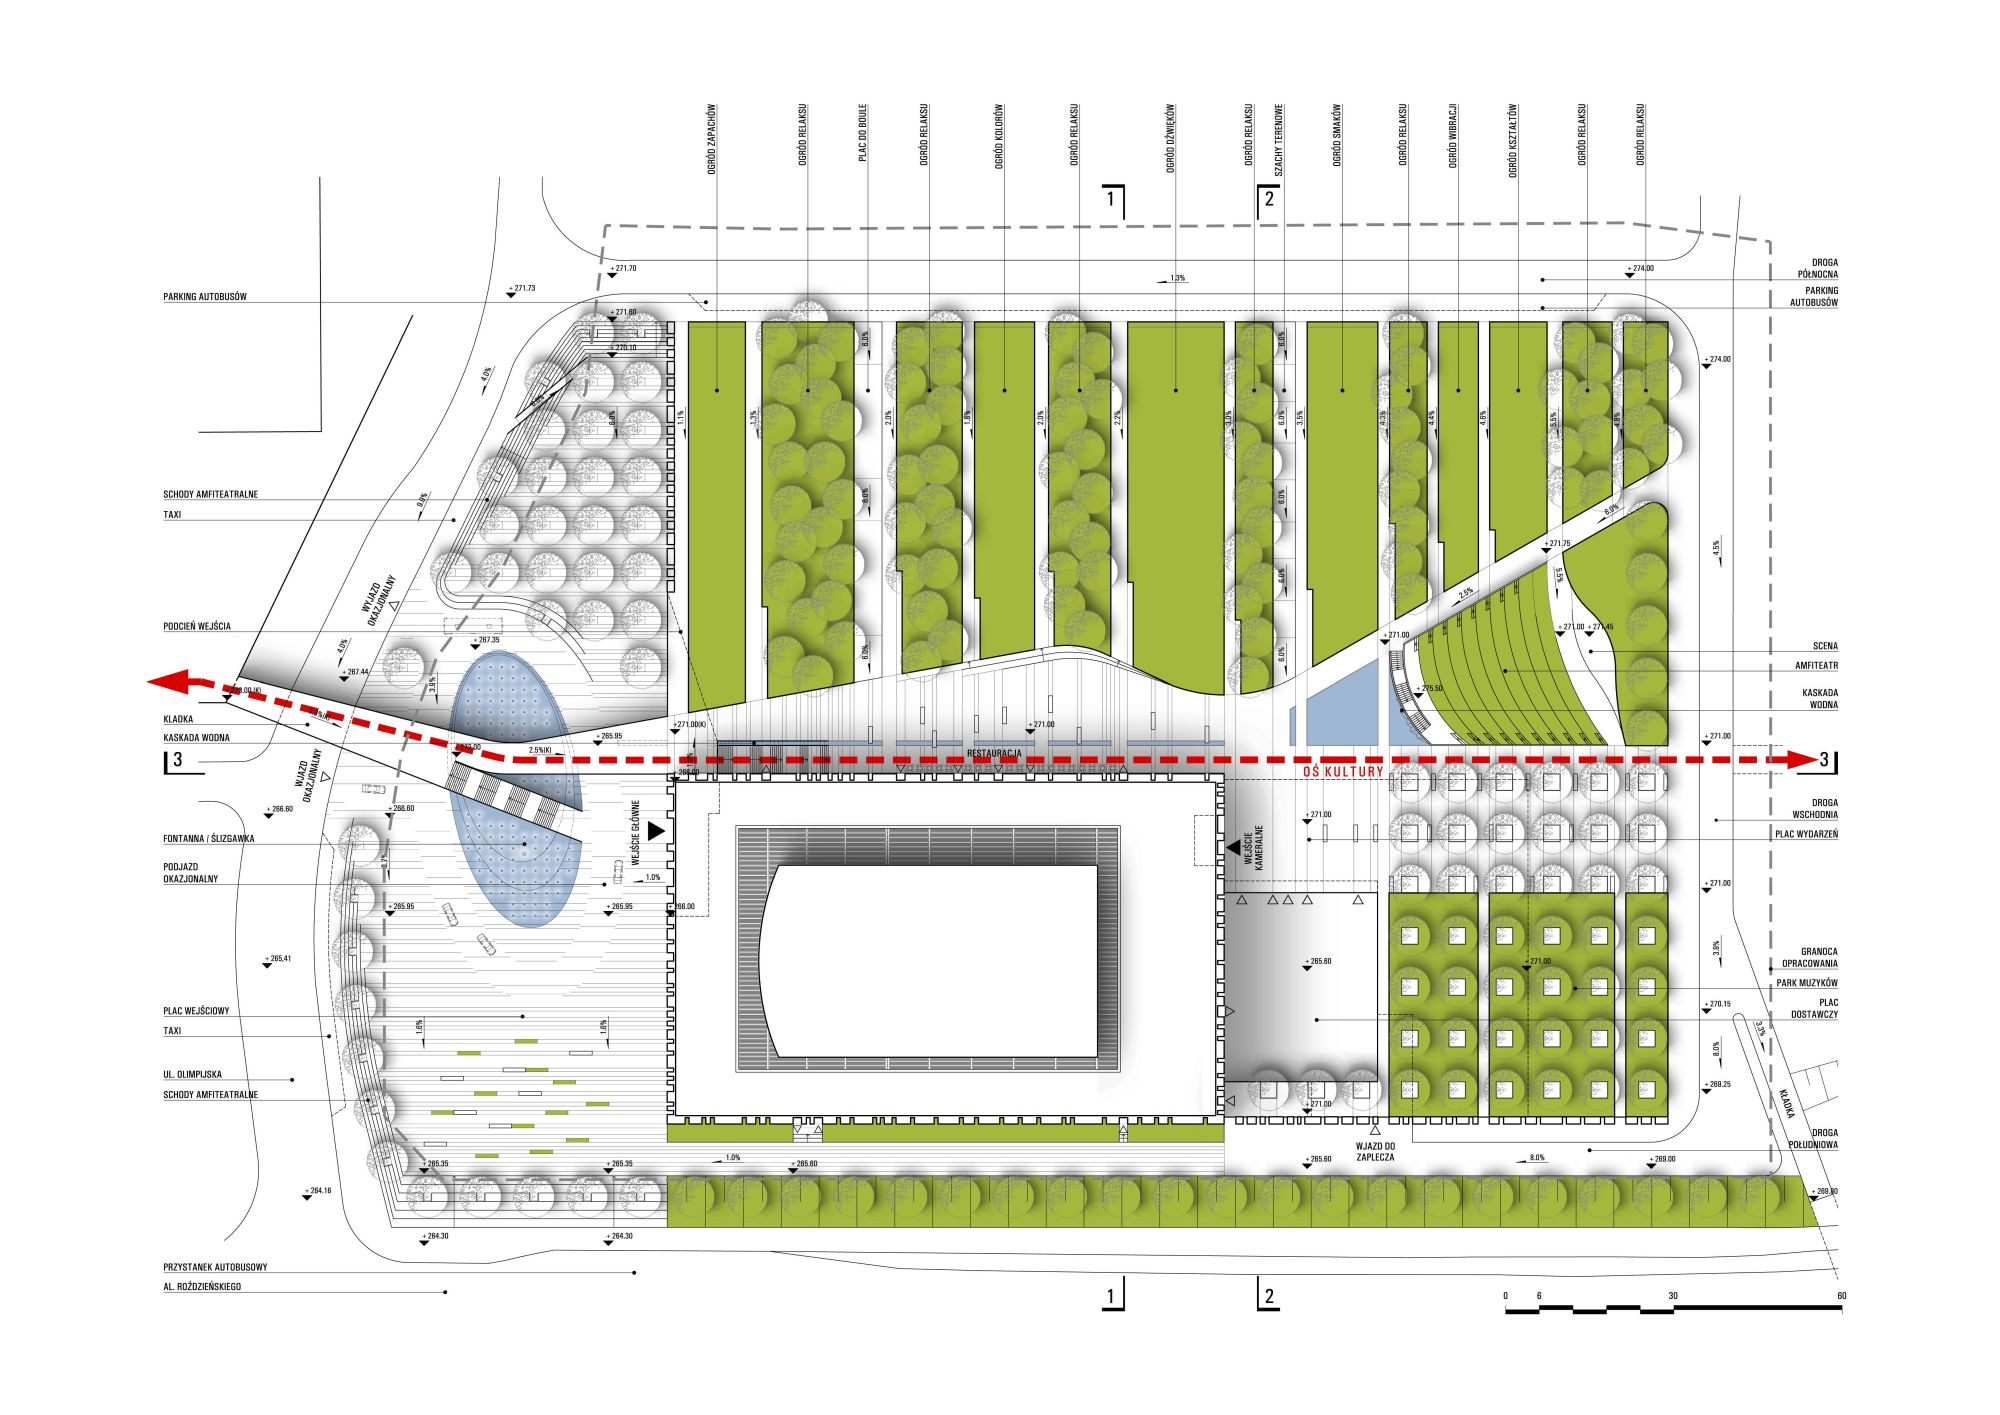 A plan of the NPRSO's building area